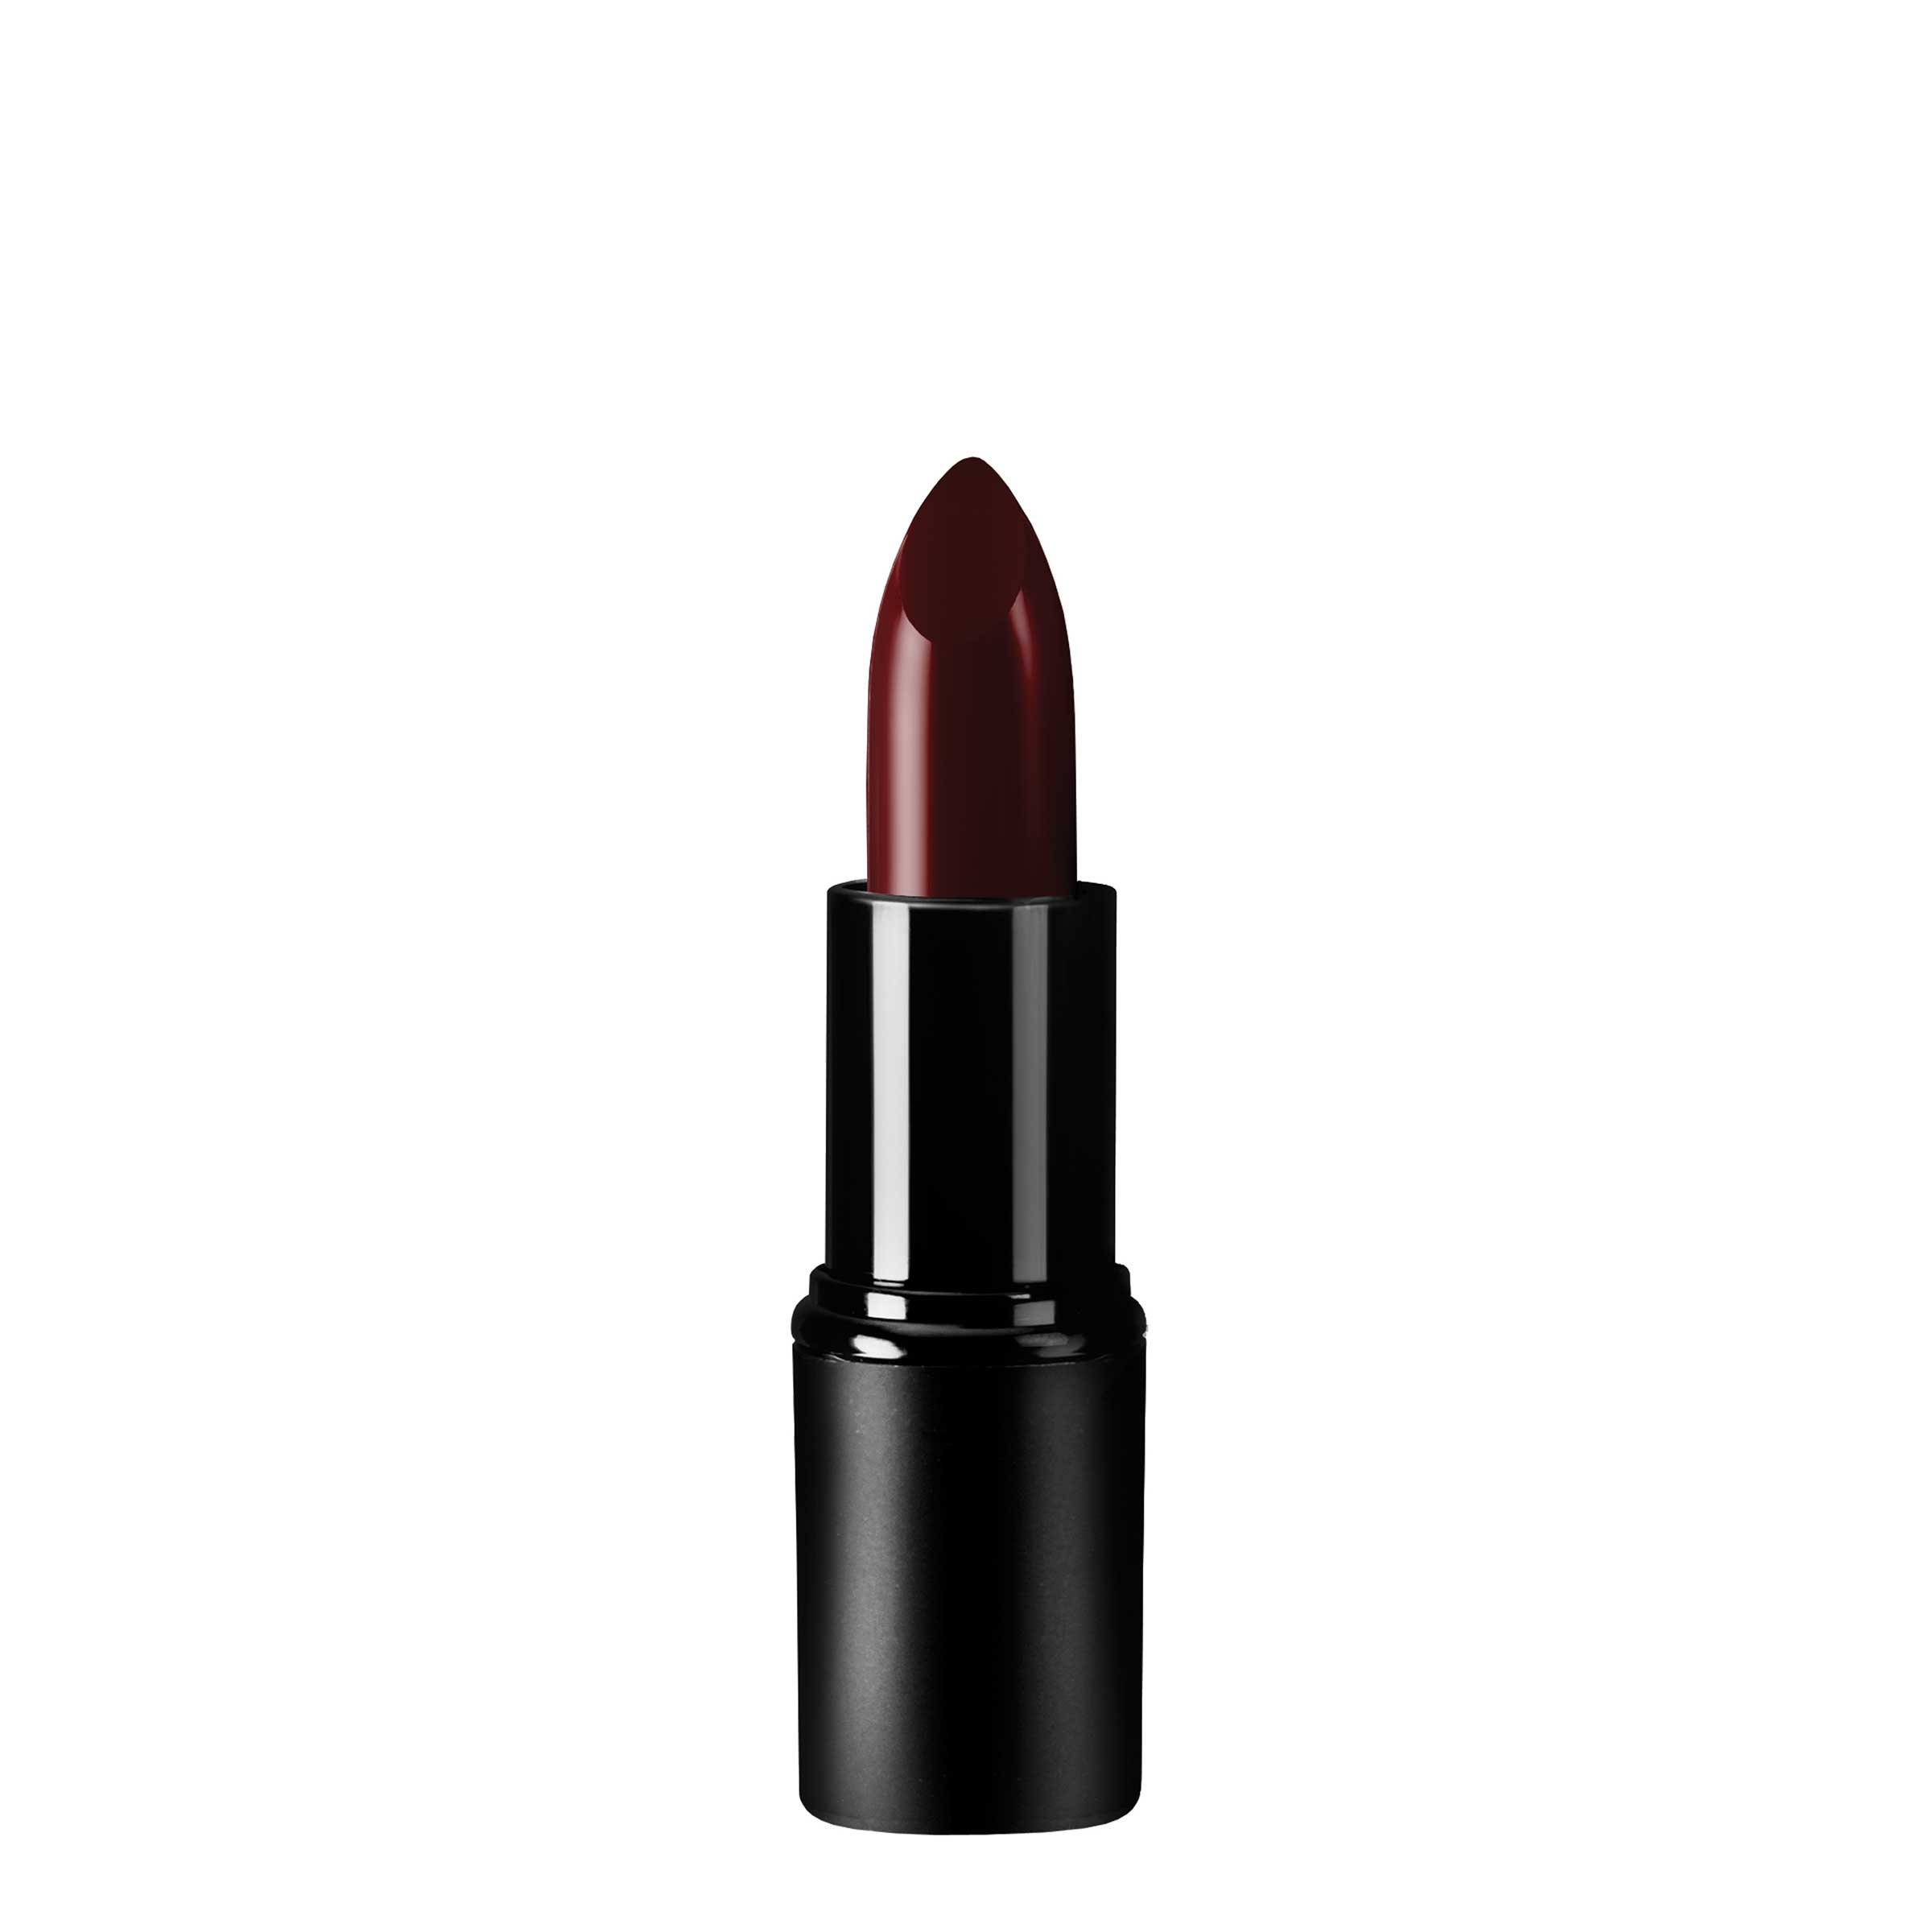 Lip Be True Lipstick Hold Your Fire Sleek Makeup